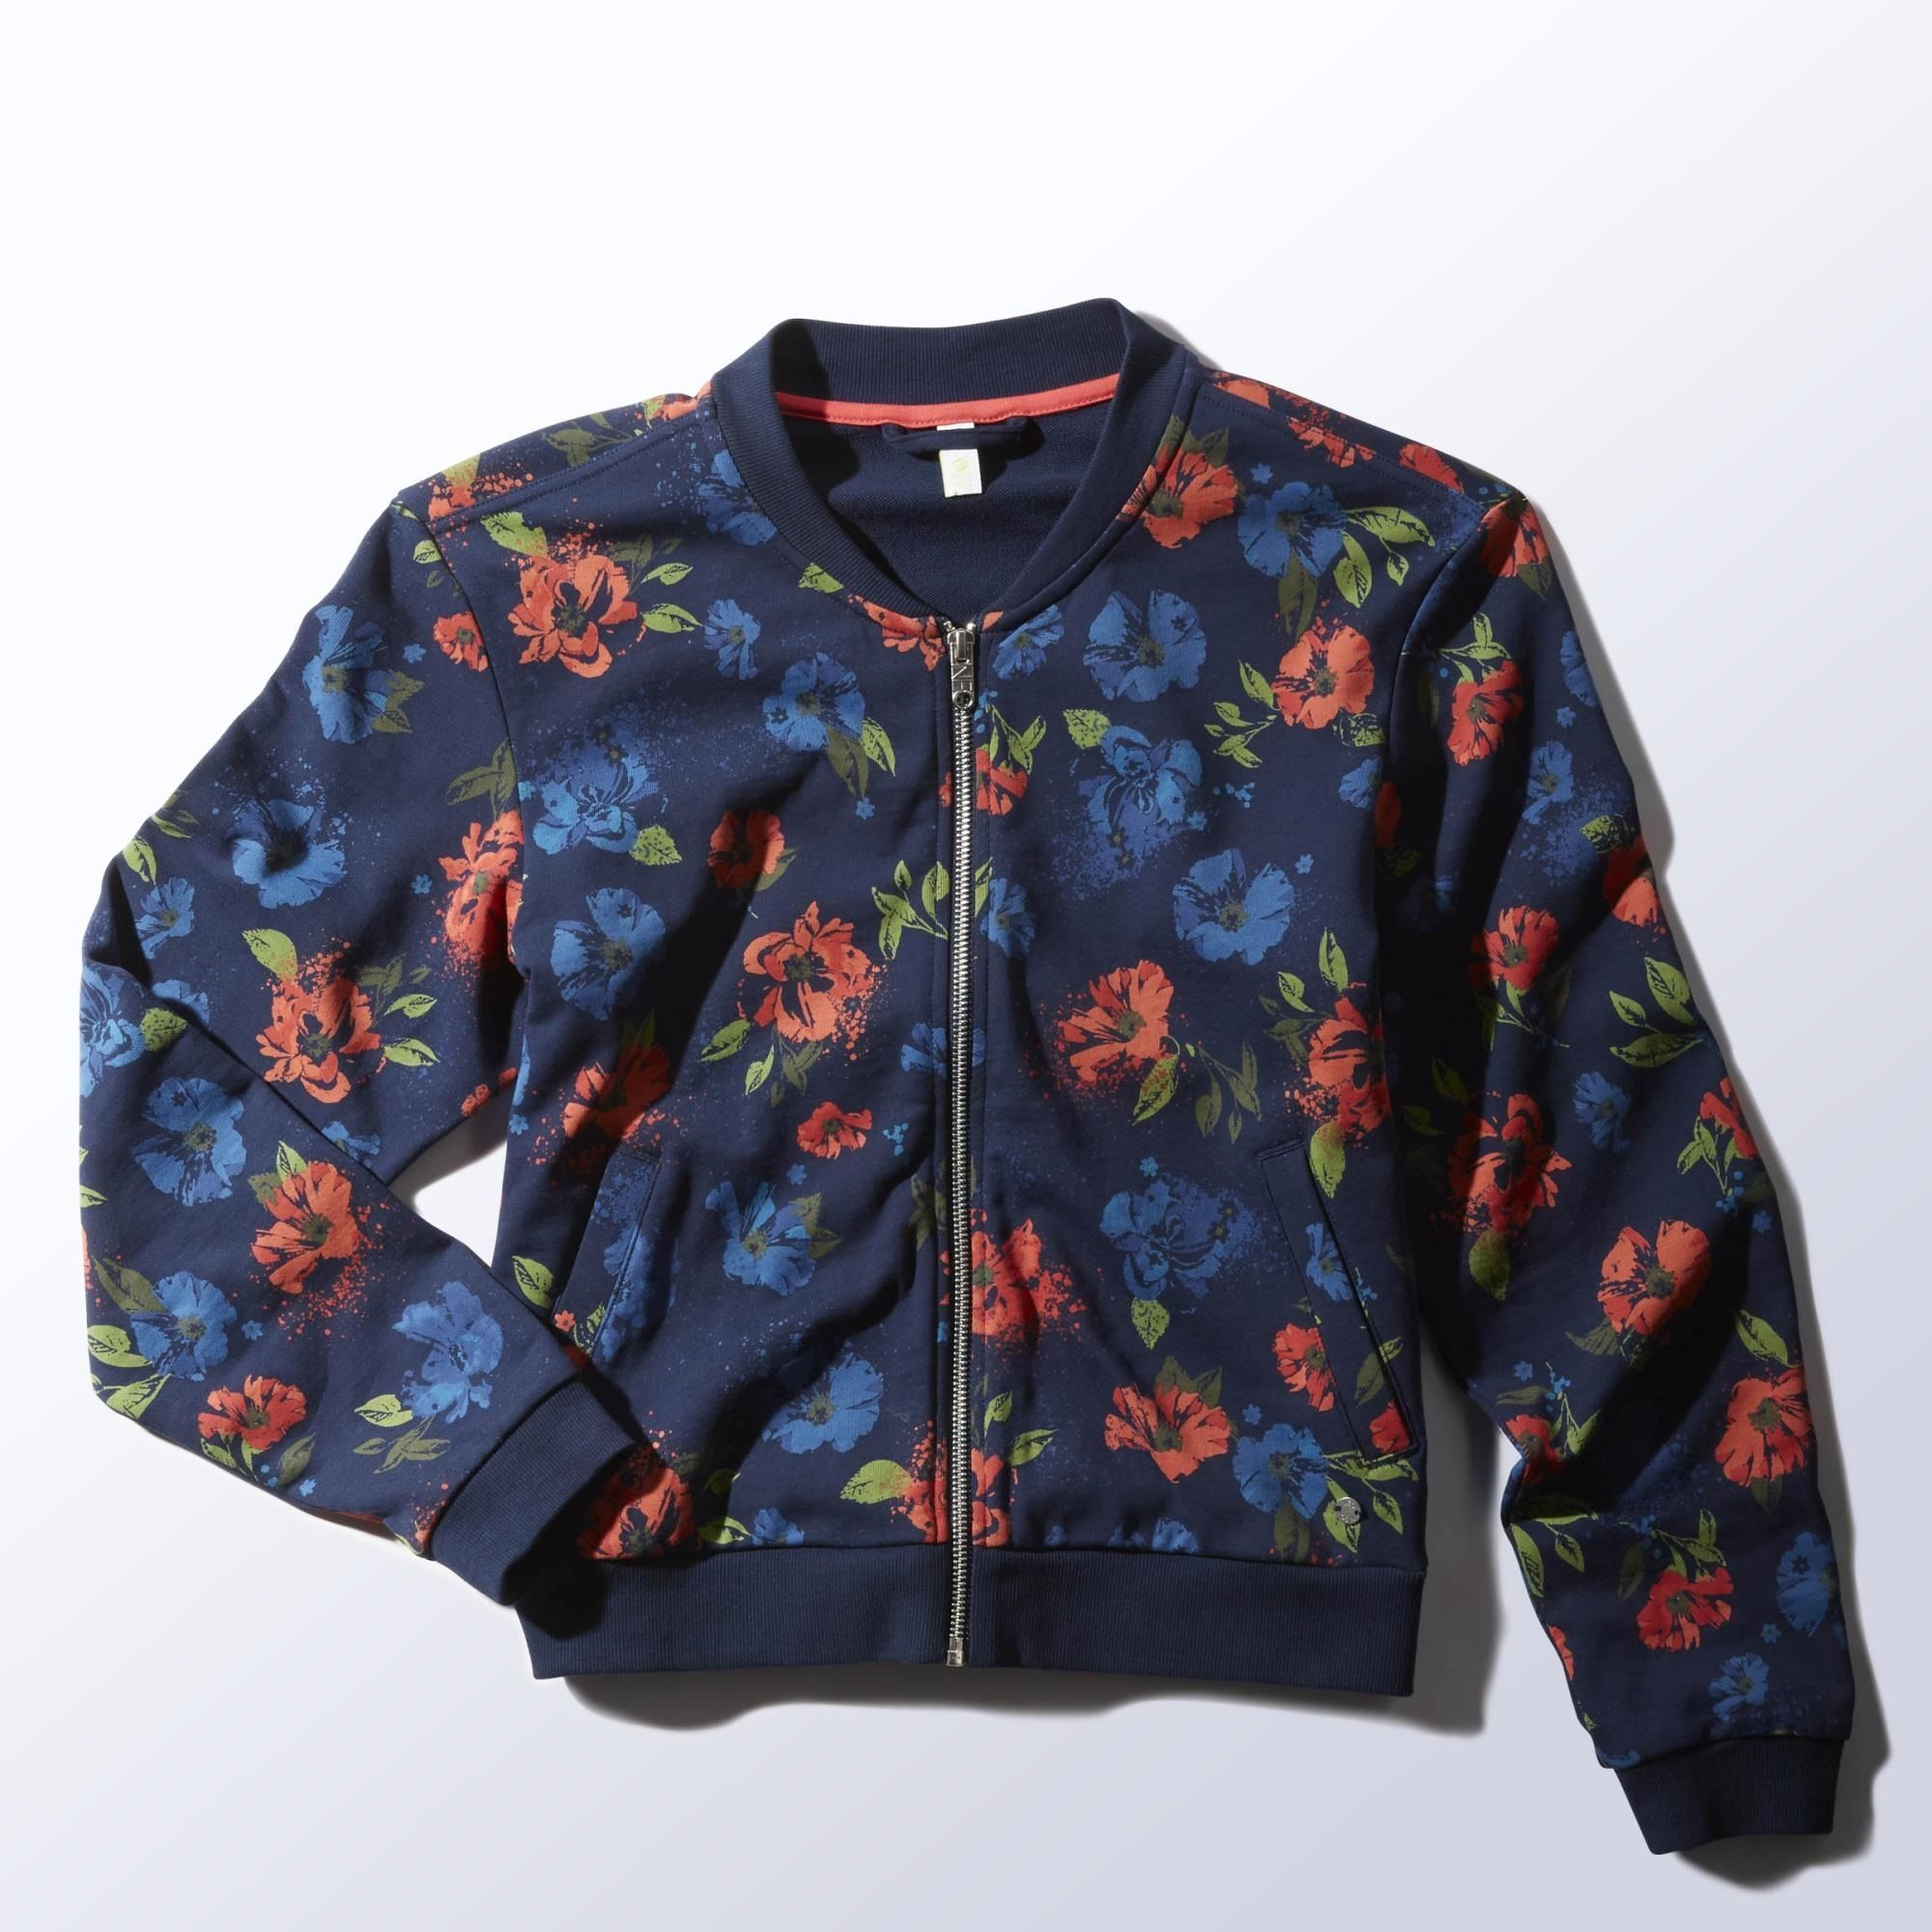 finest selection f1b19 895d7 adidas - Chamarra NEO Floral Bomber Mujer